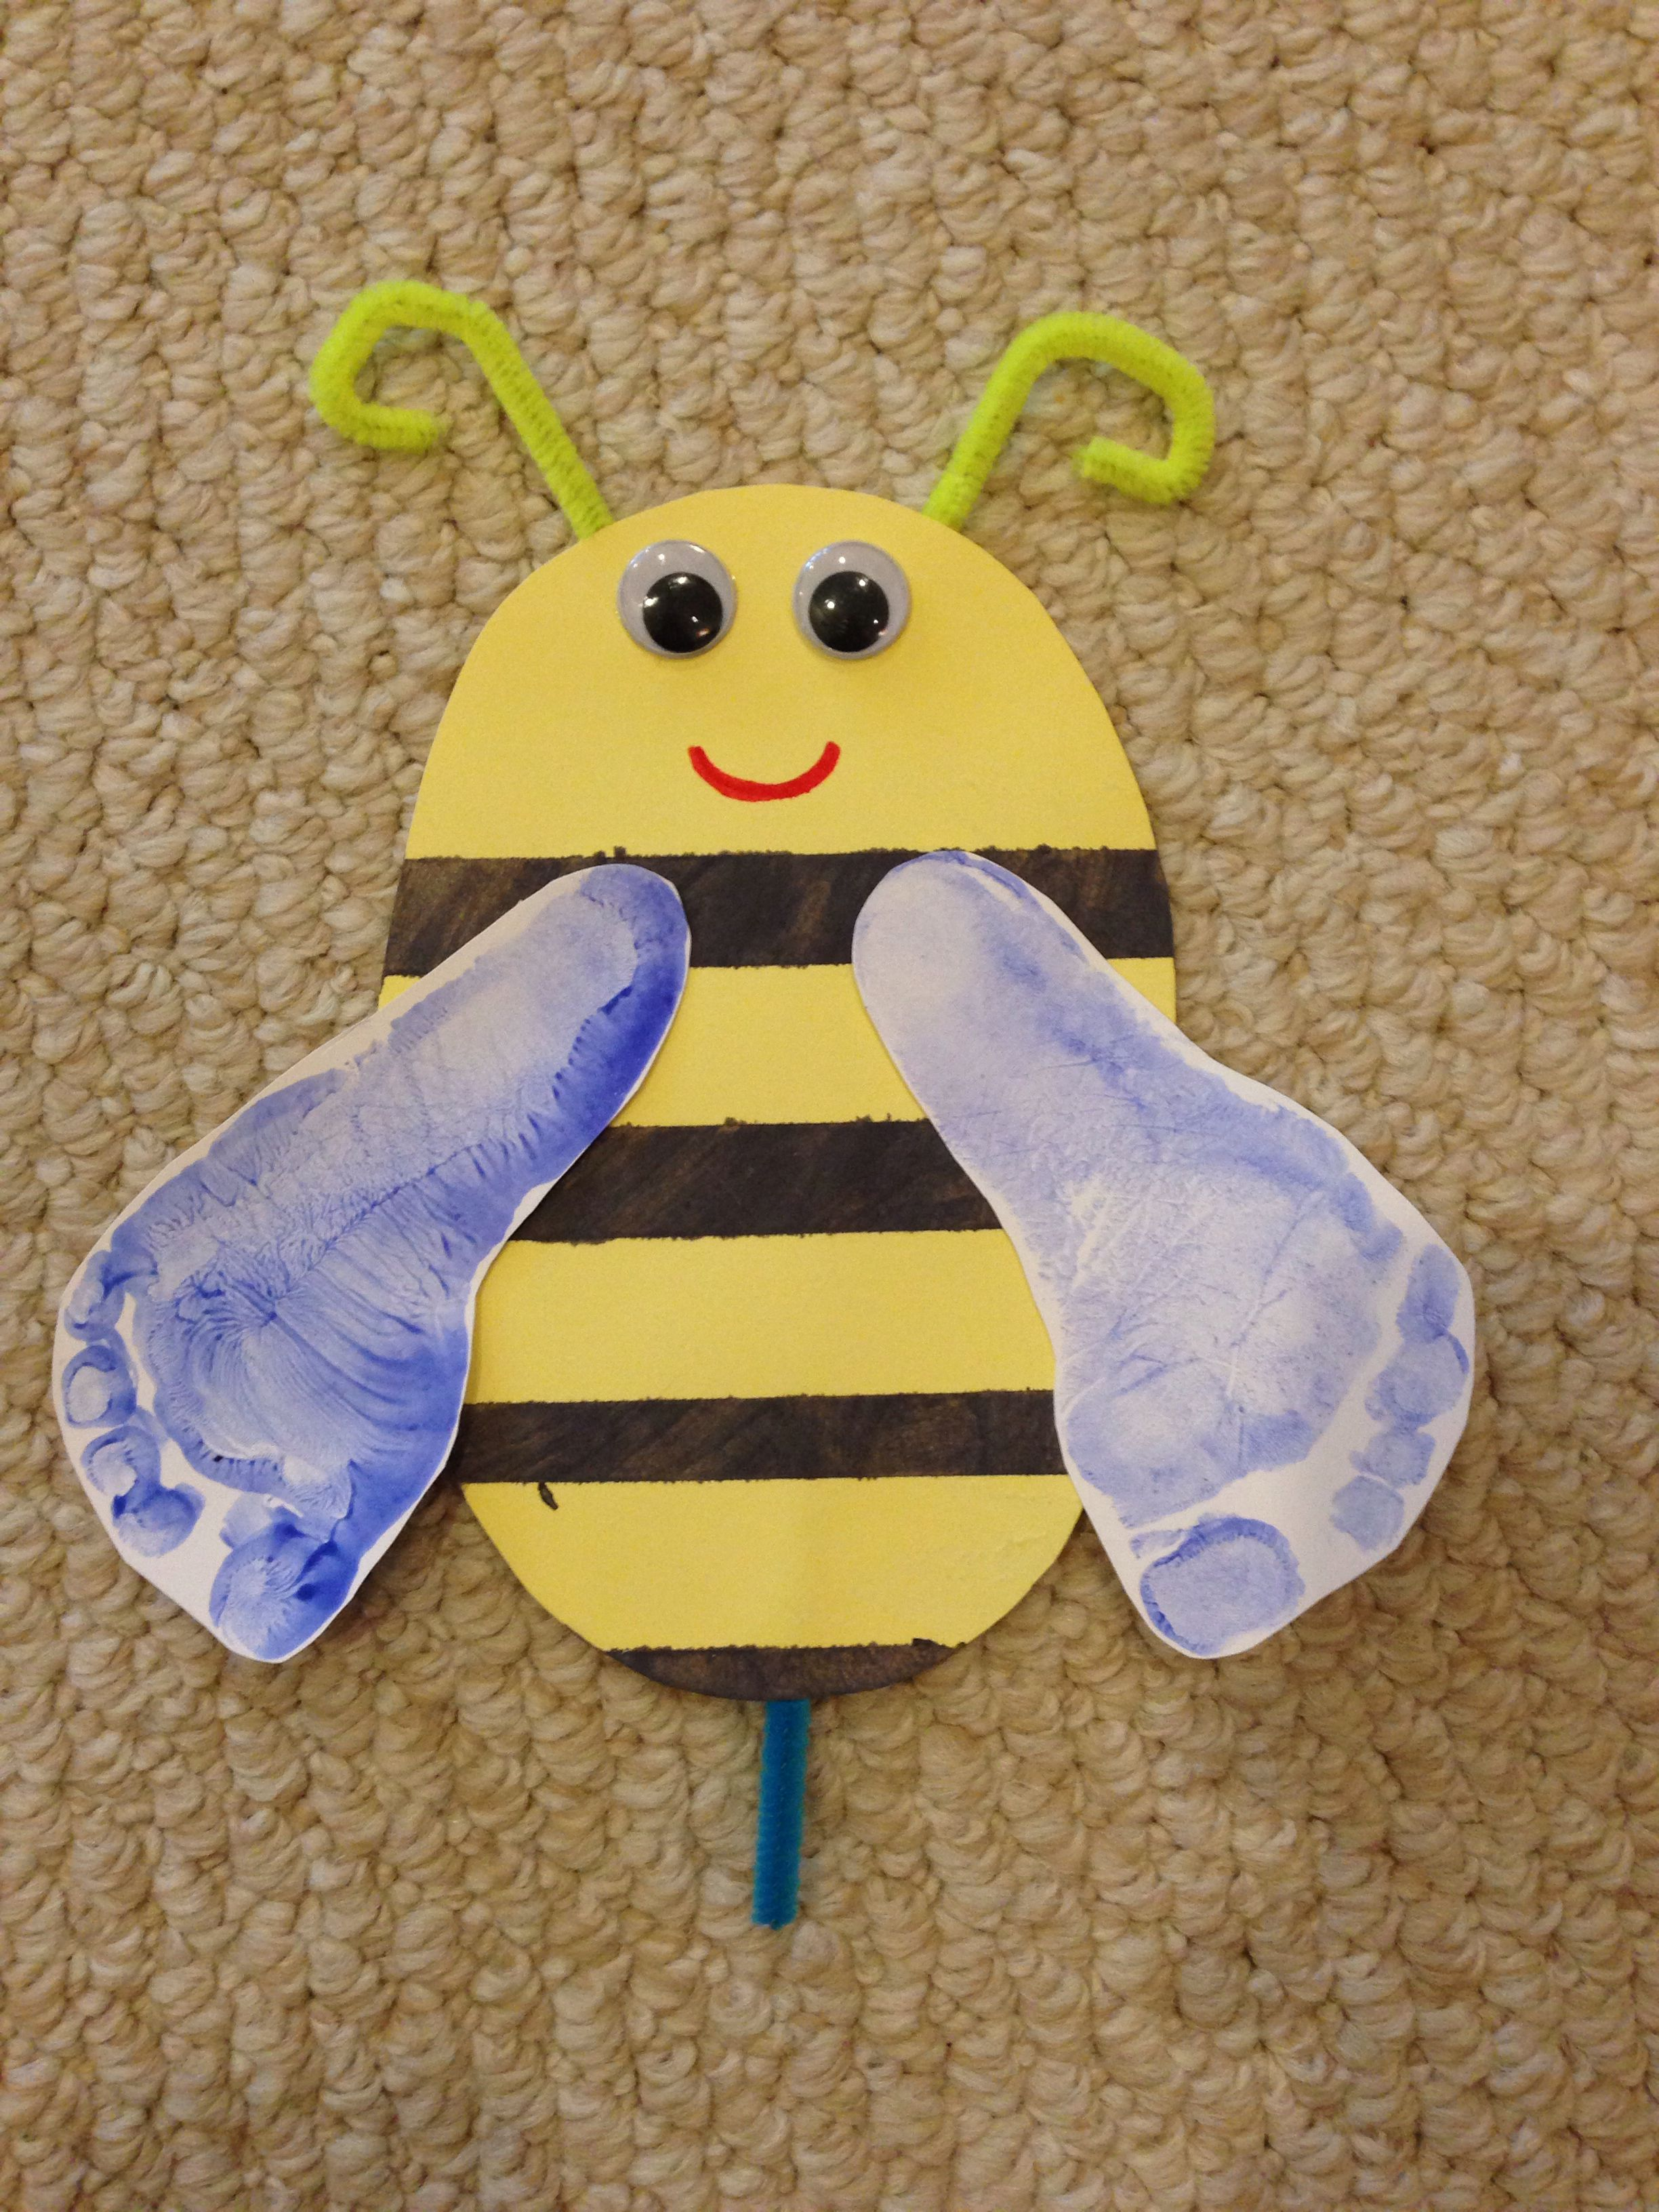 Bumble bee i used yellow paper masking tape and black paint to